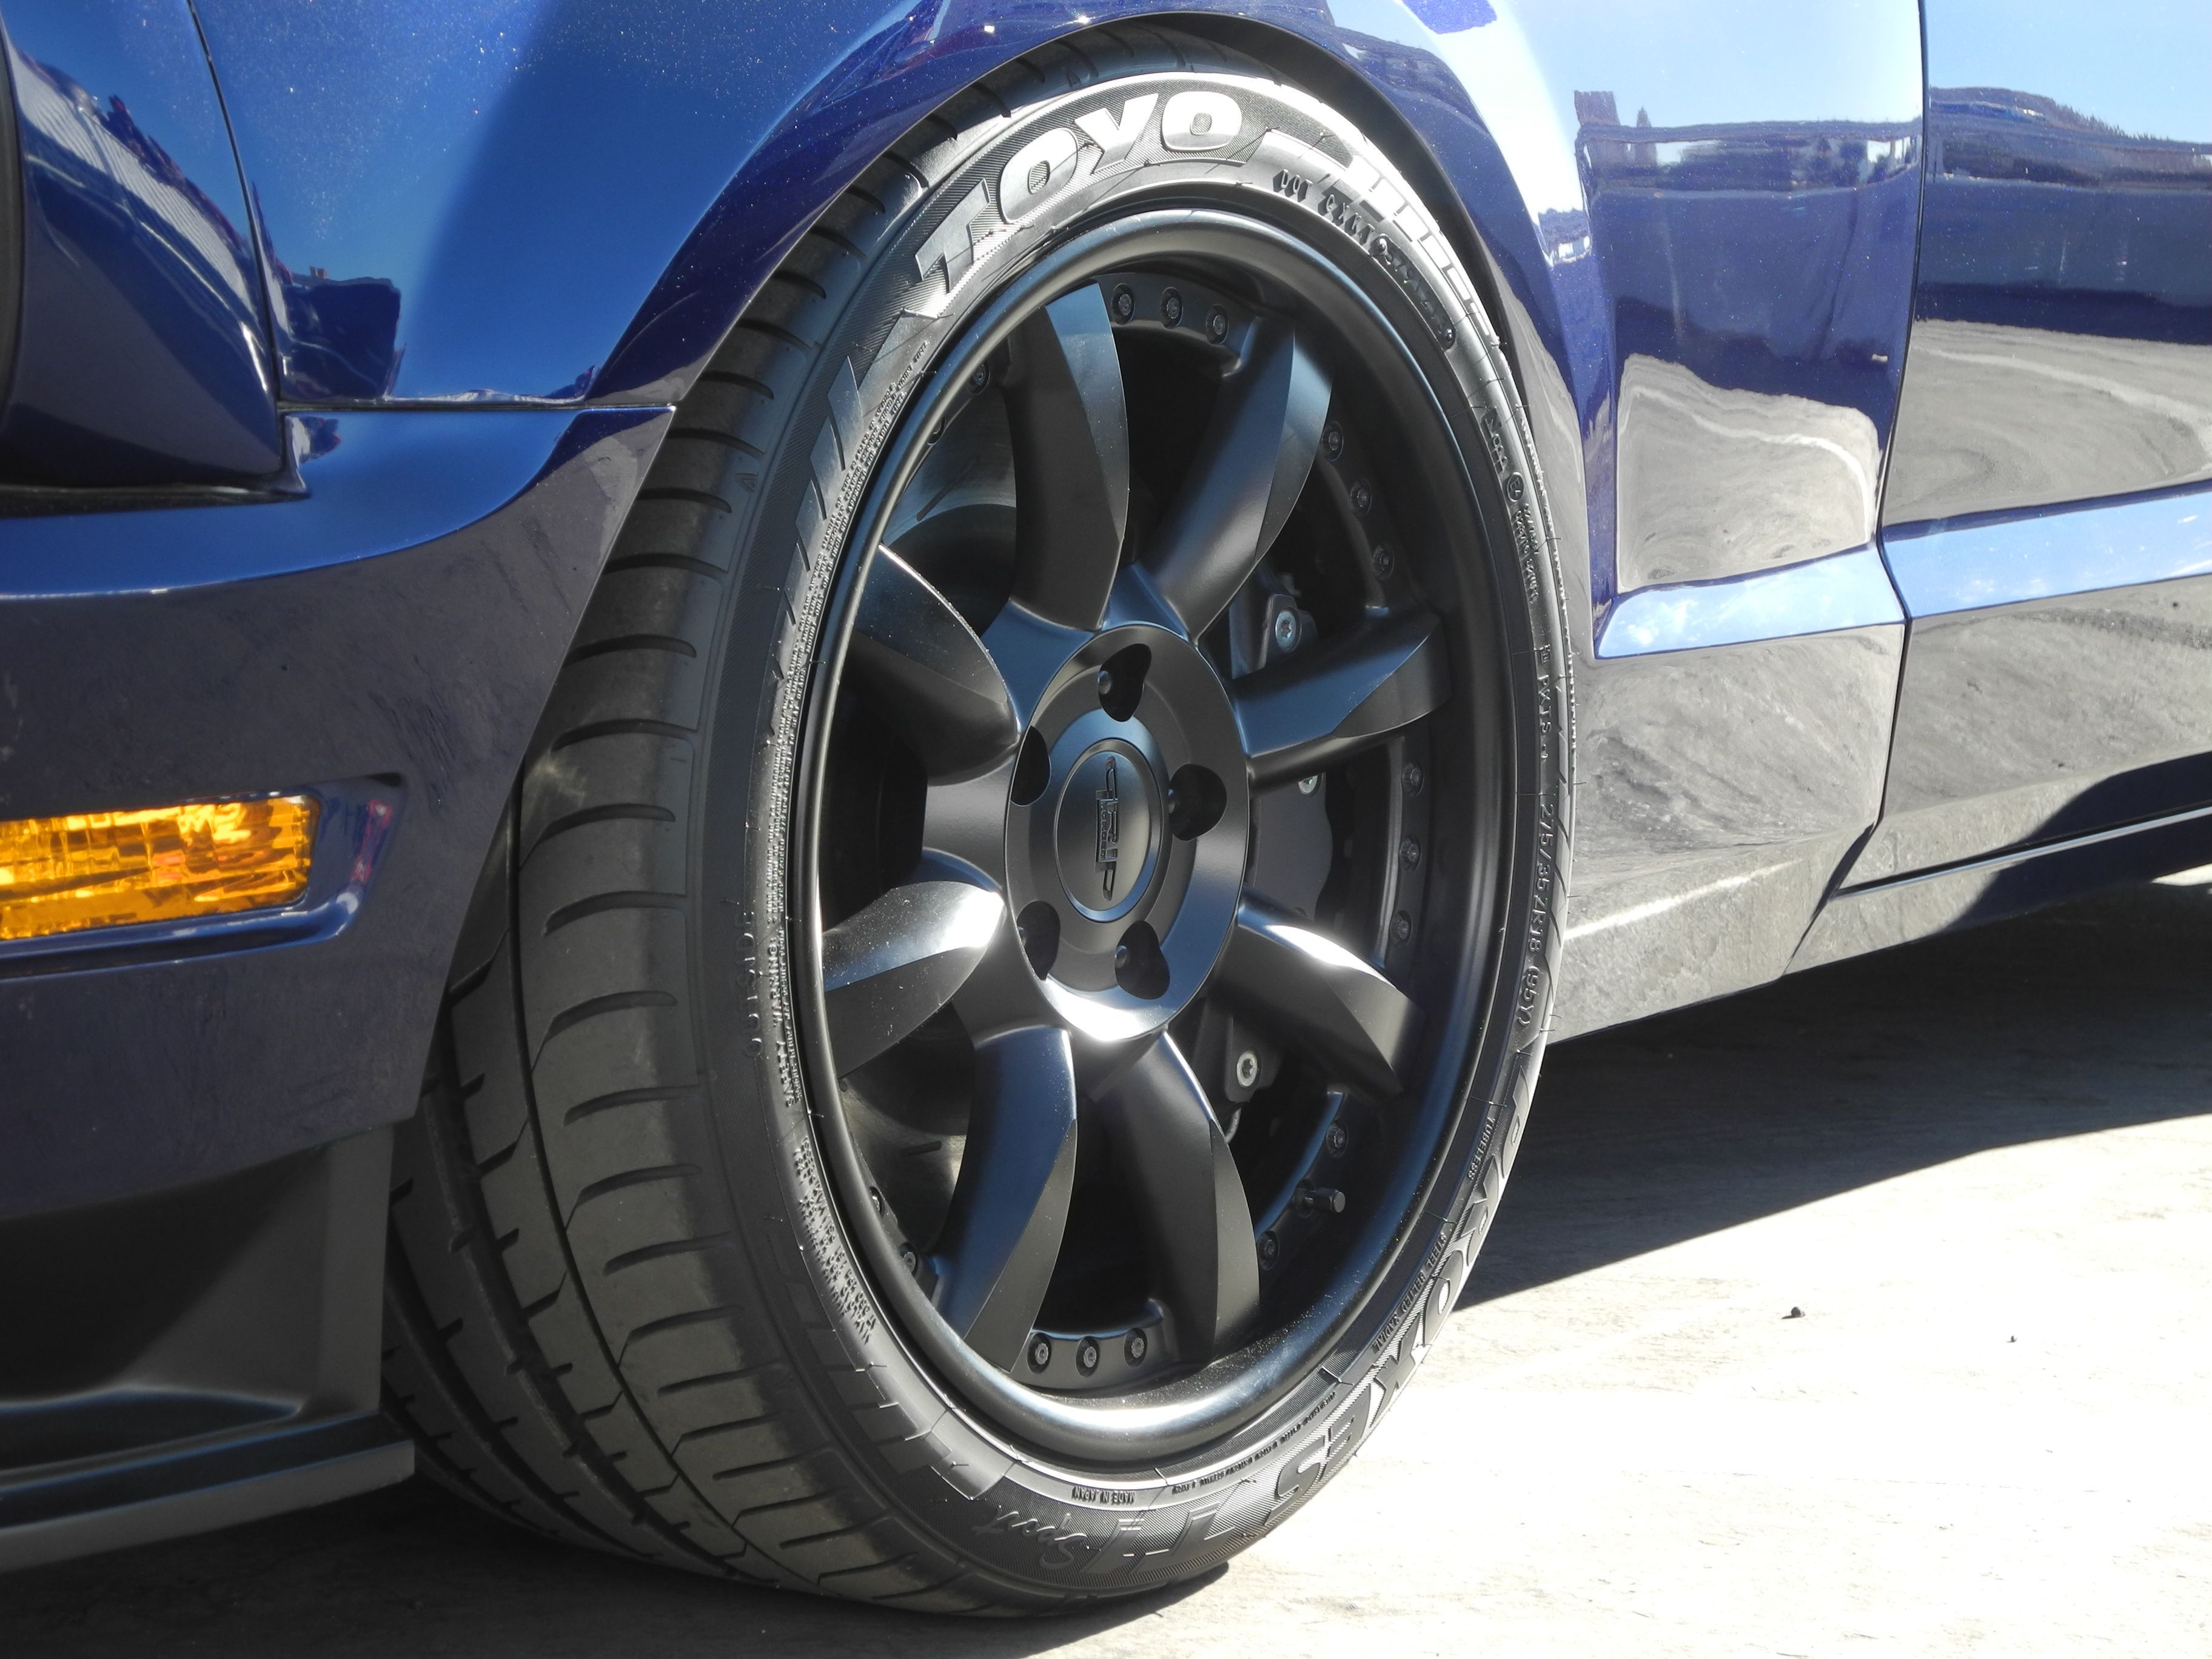 Brett Behren's V10-powered Mustang Evolution on Grip Equipped Laguna wheels finished in Satin Black. Built by A-Team Racing SEMA Be Cool Bomber Project. See more at: http://www.forgeline.com/customer_gallery_view.php?cvk=1225 #Forgeline #GripEquipped #Laguna #notjustanotherprettywheel #madeinUSA #Ford #Mustang